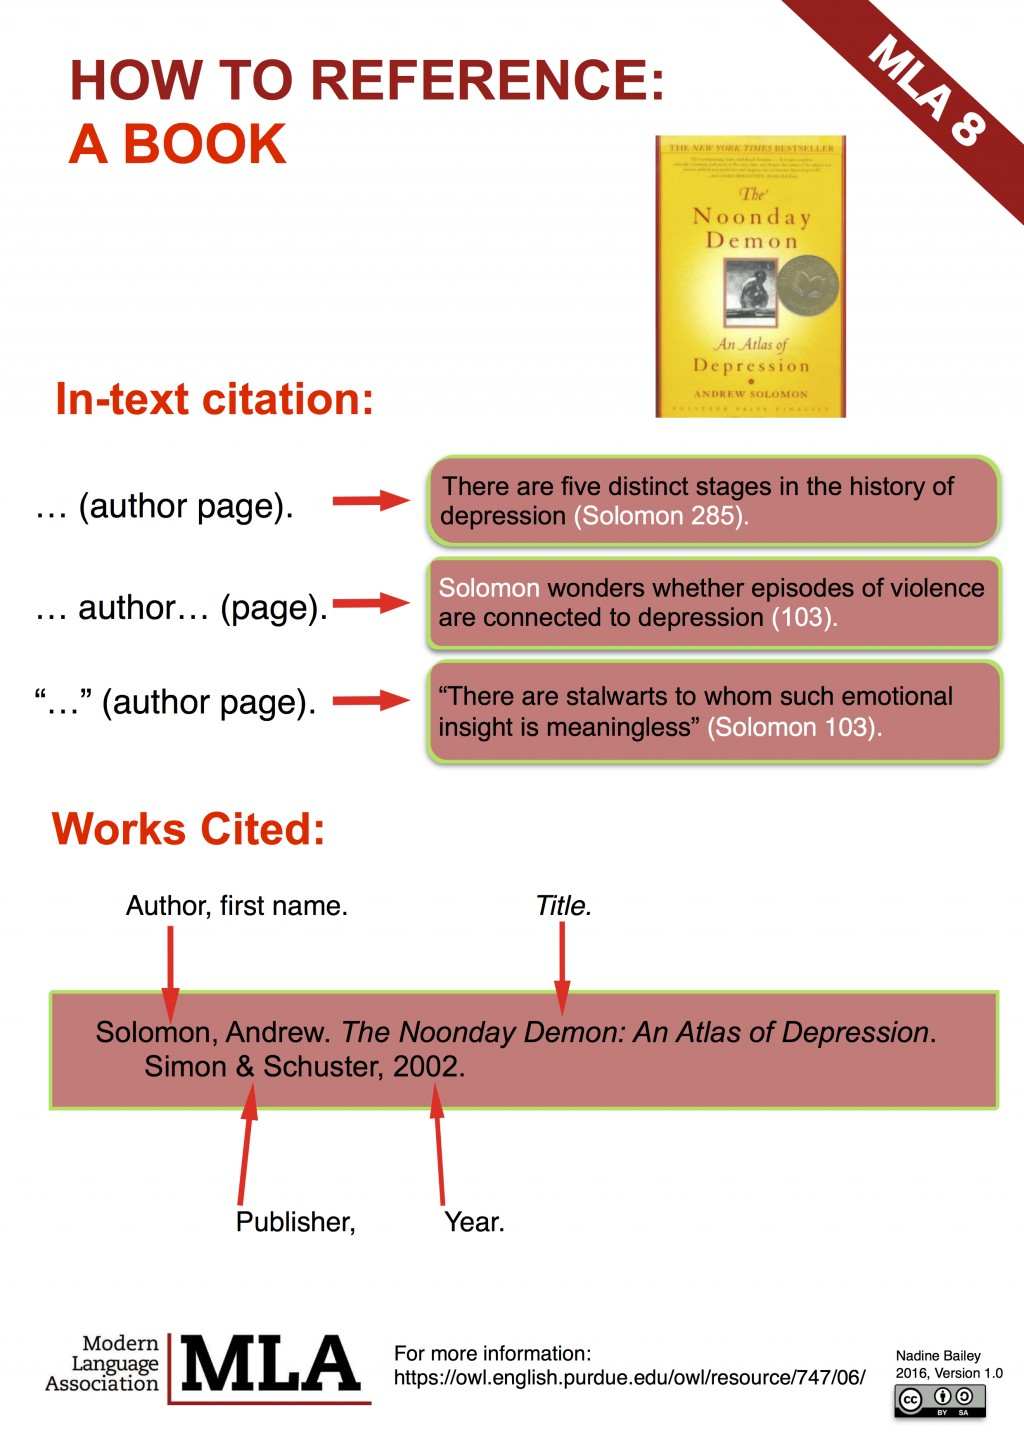 024 Research Paper Mla Citation Mla8 Book English Impressive 8 Easybib Website Search Generator In Text Cheat Sheet Large